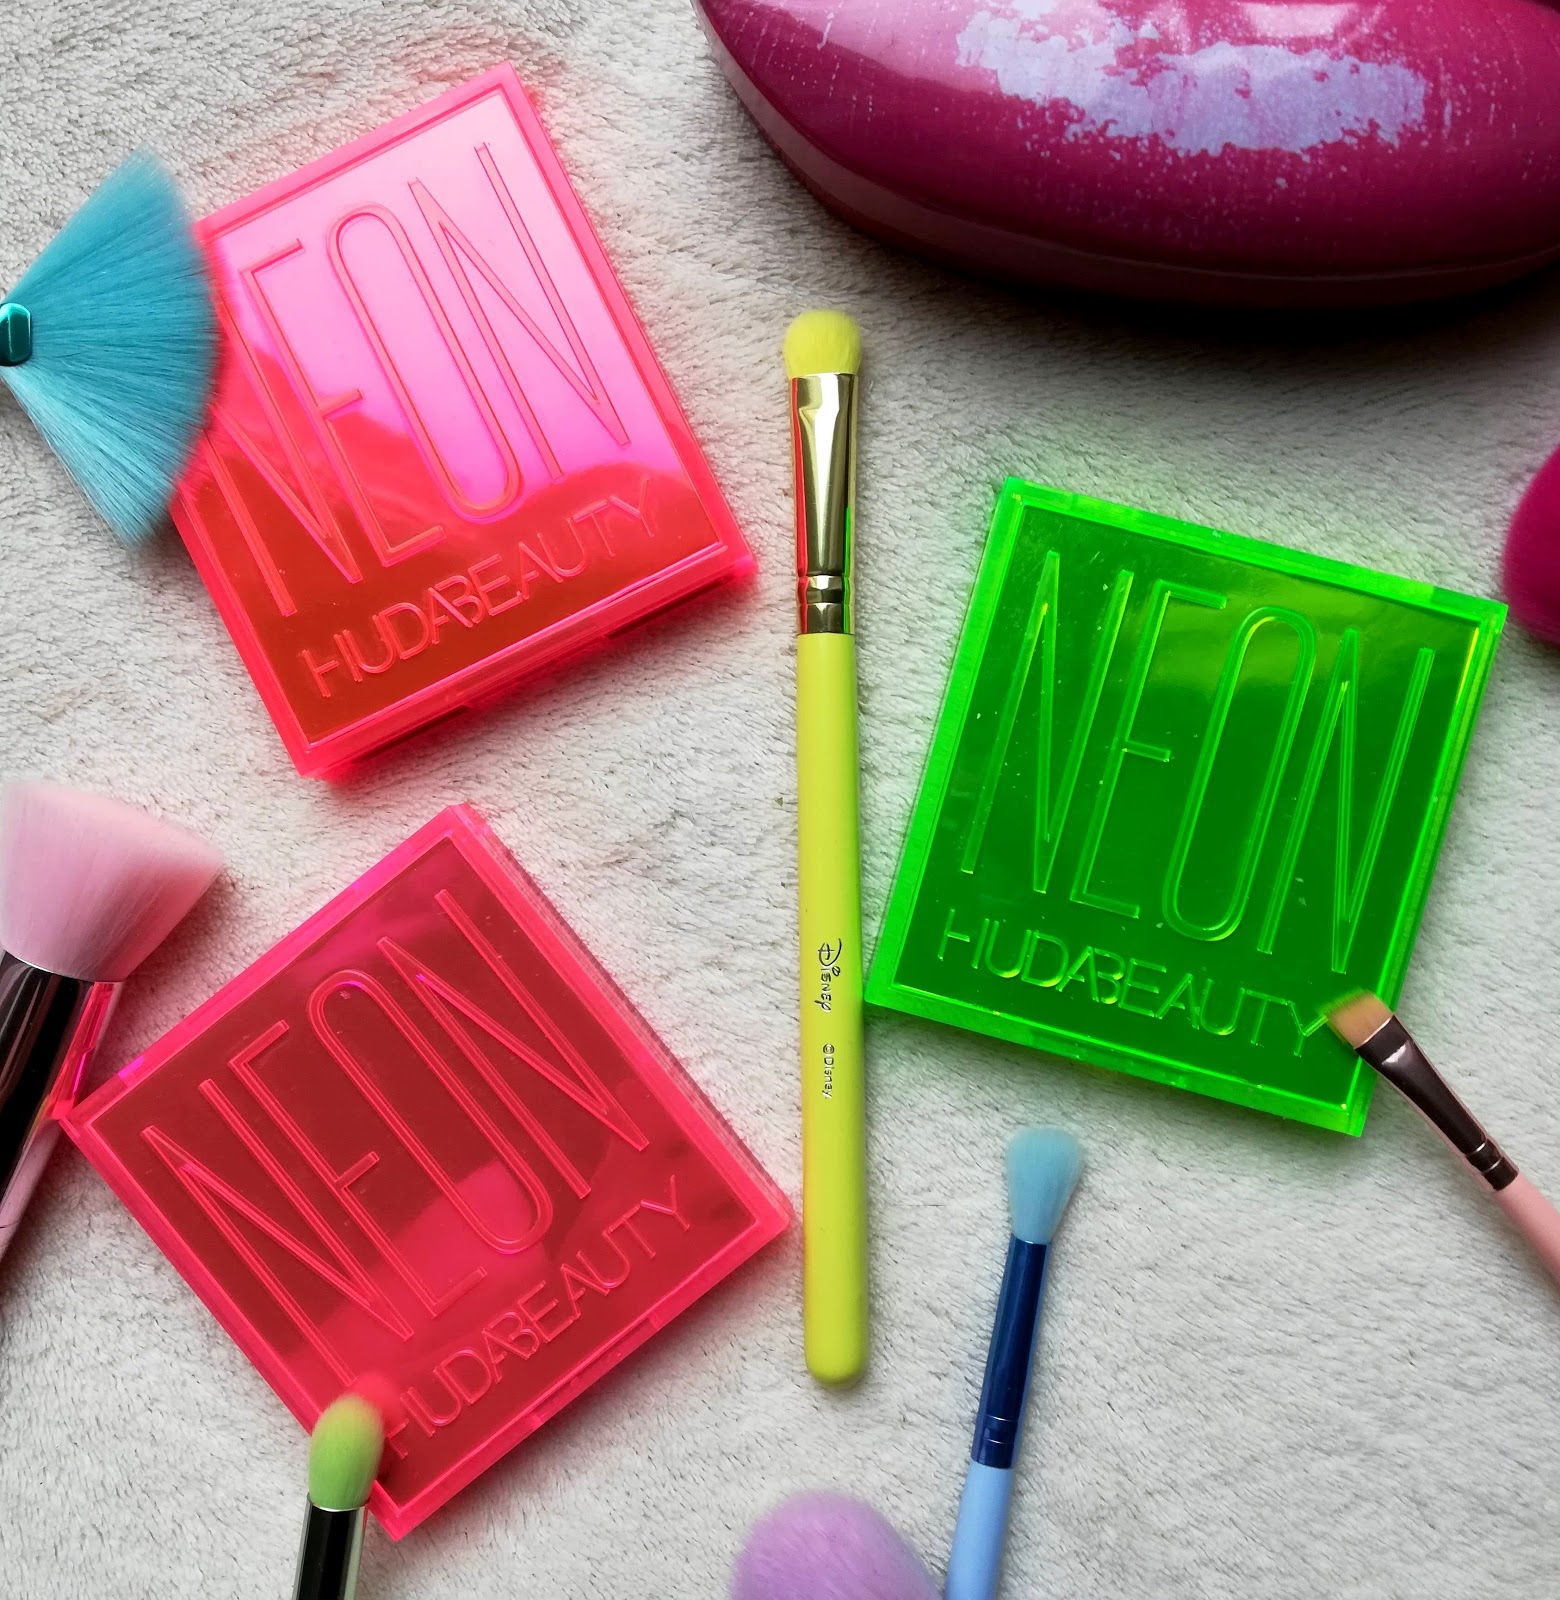 Les palettes Neon Obsession de HUDA BEAUTY / Swach & Make Up